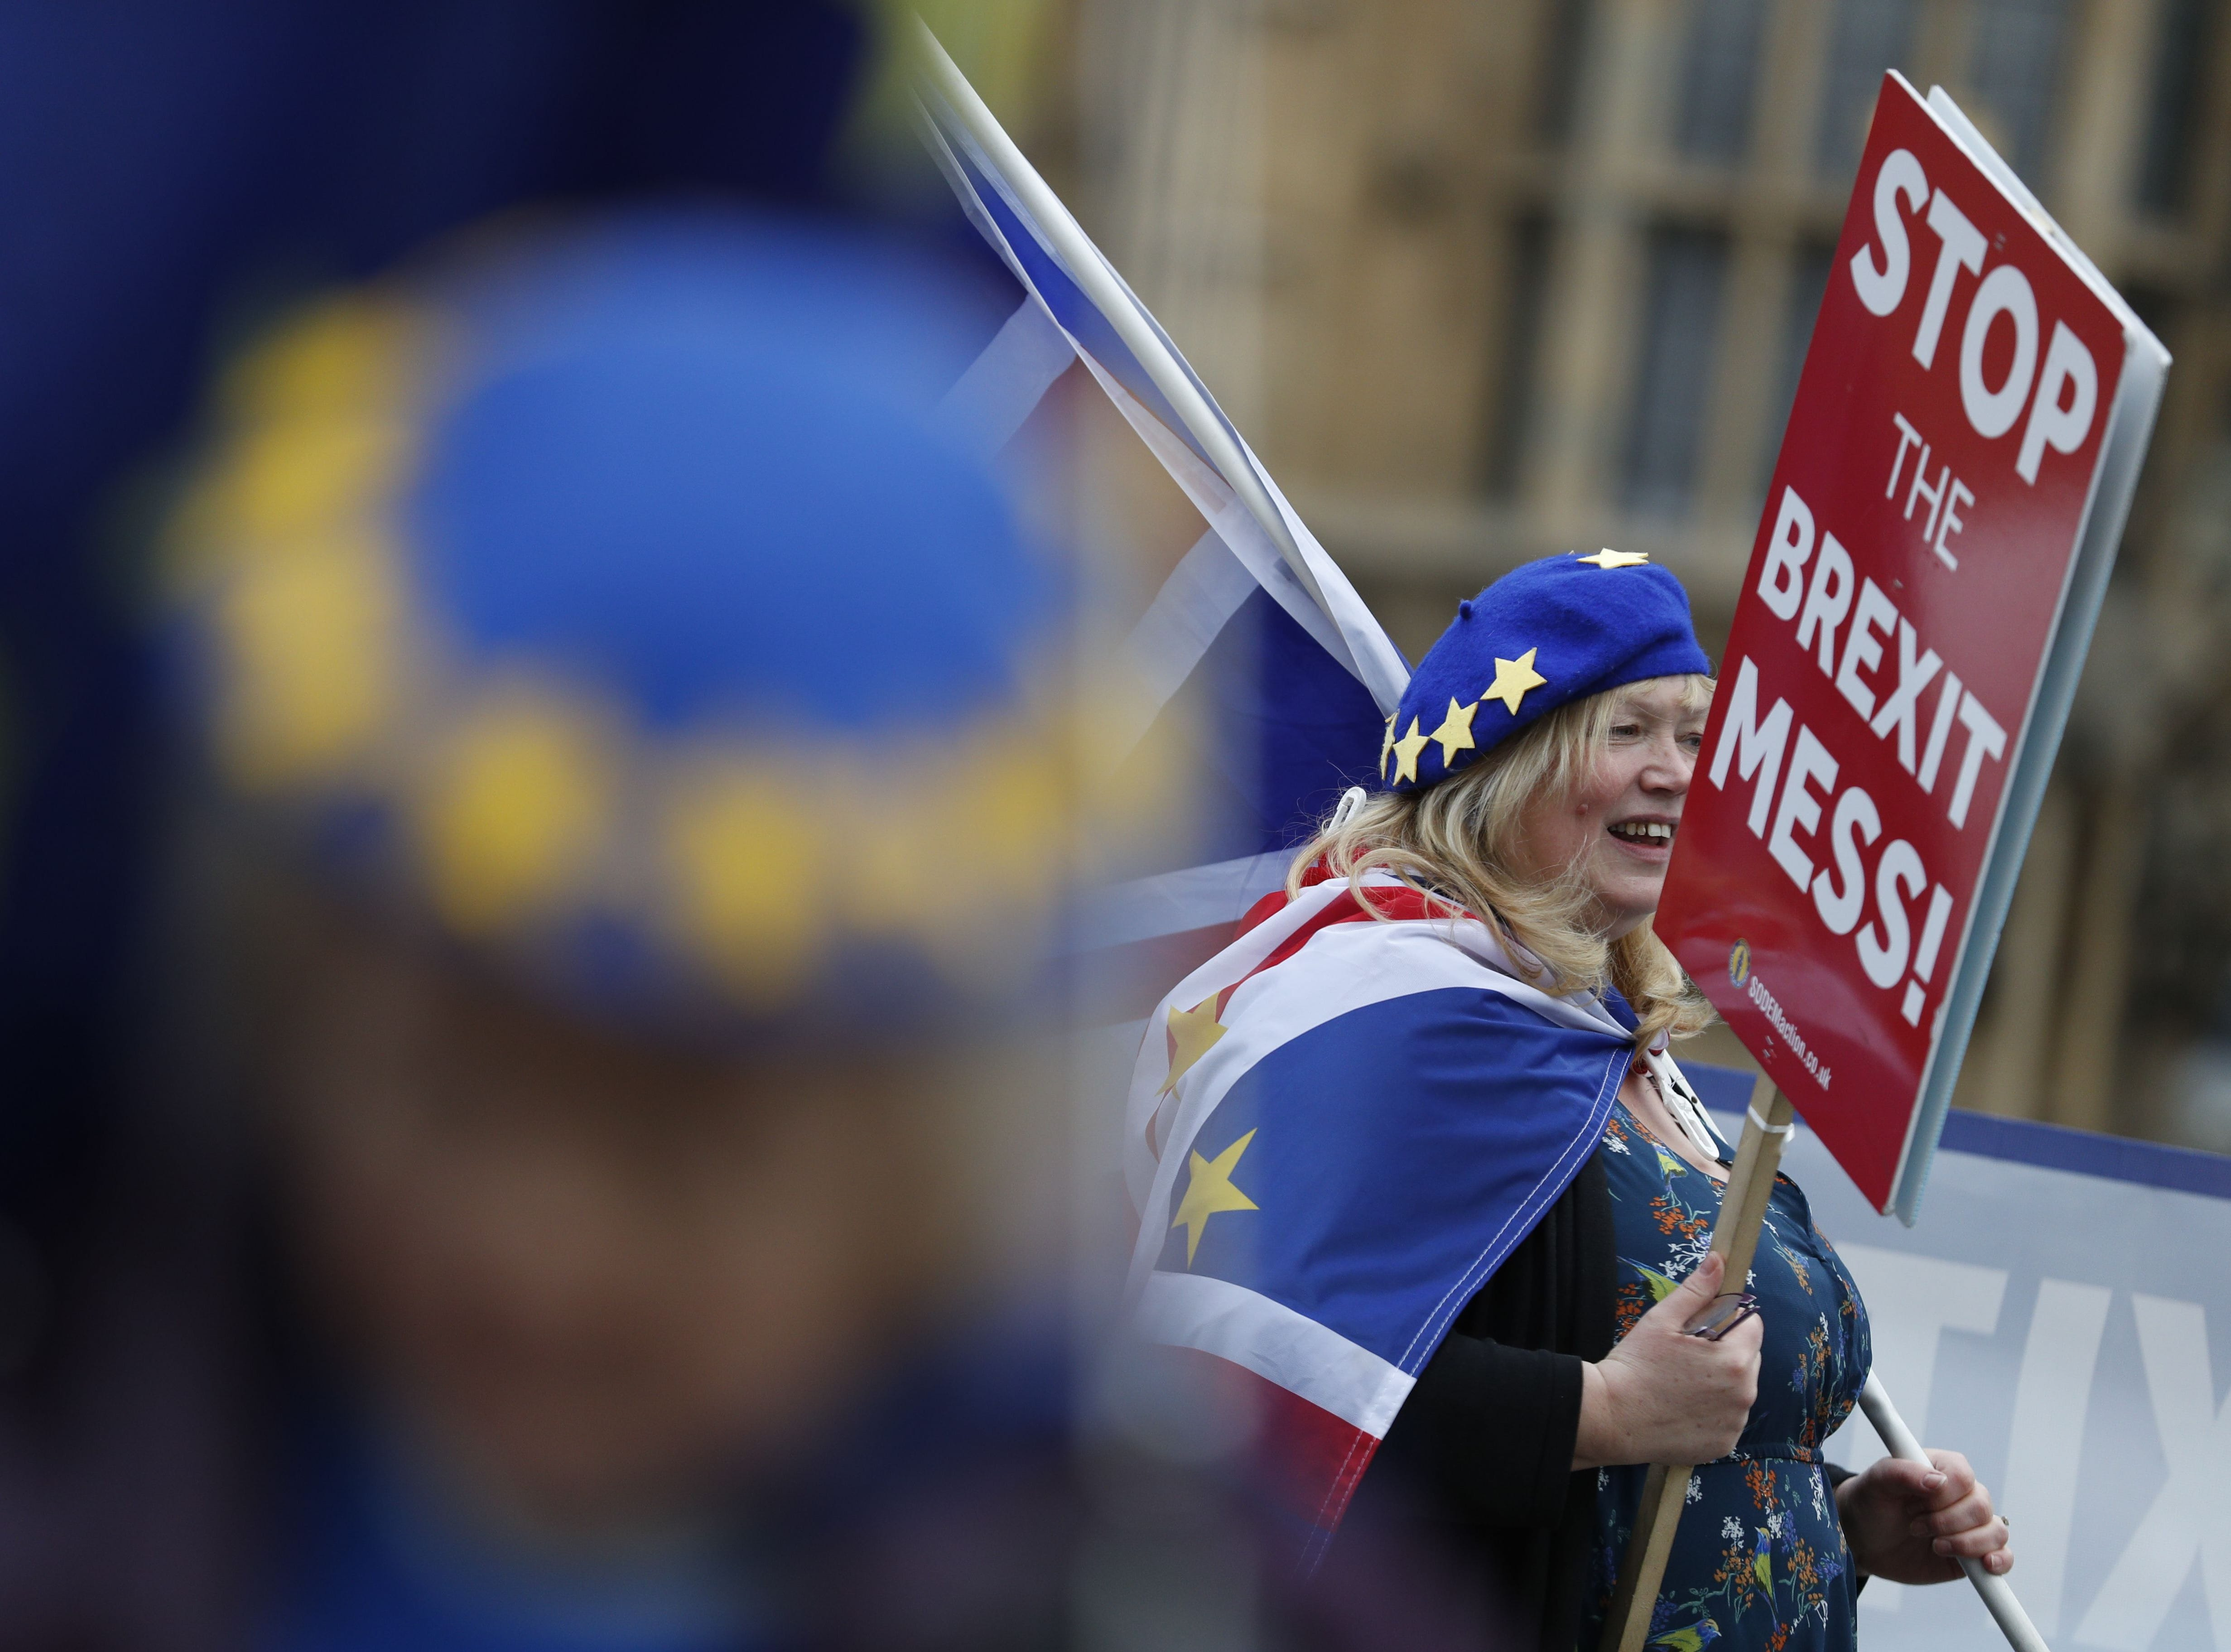 An anti-Brexit protester wearing attire decorated with EU flag motifs holding a placard stands outside the Houses of Parliament in London on Jan. 10, 2019.